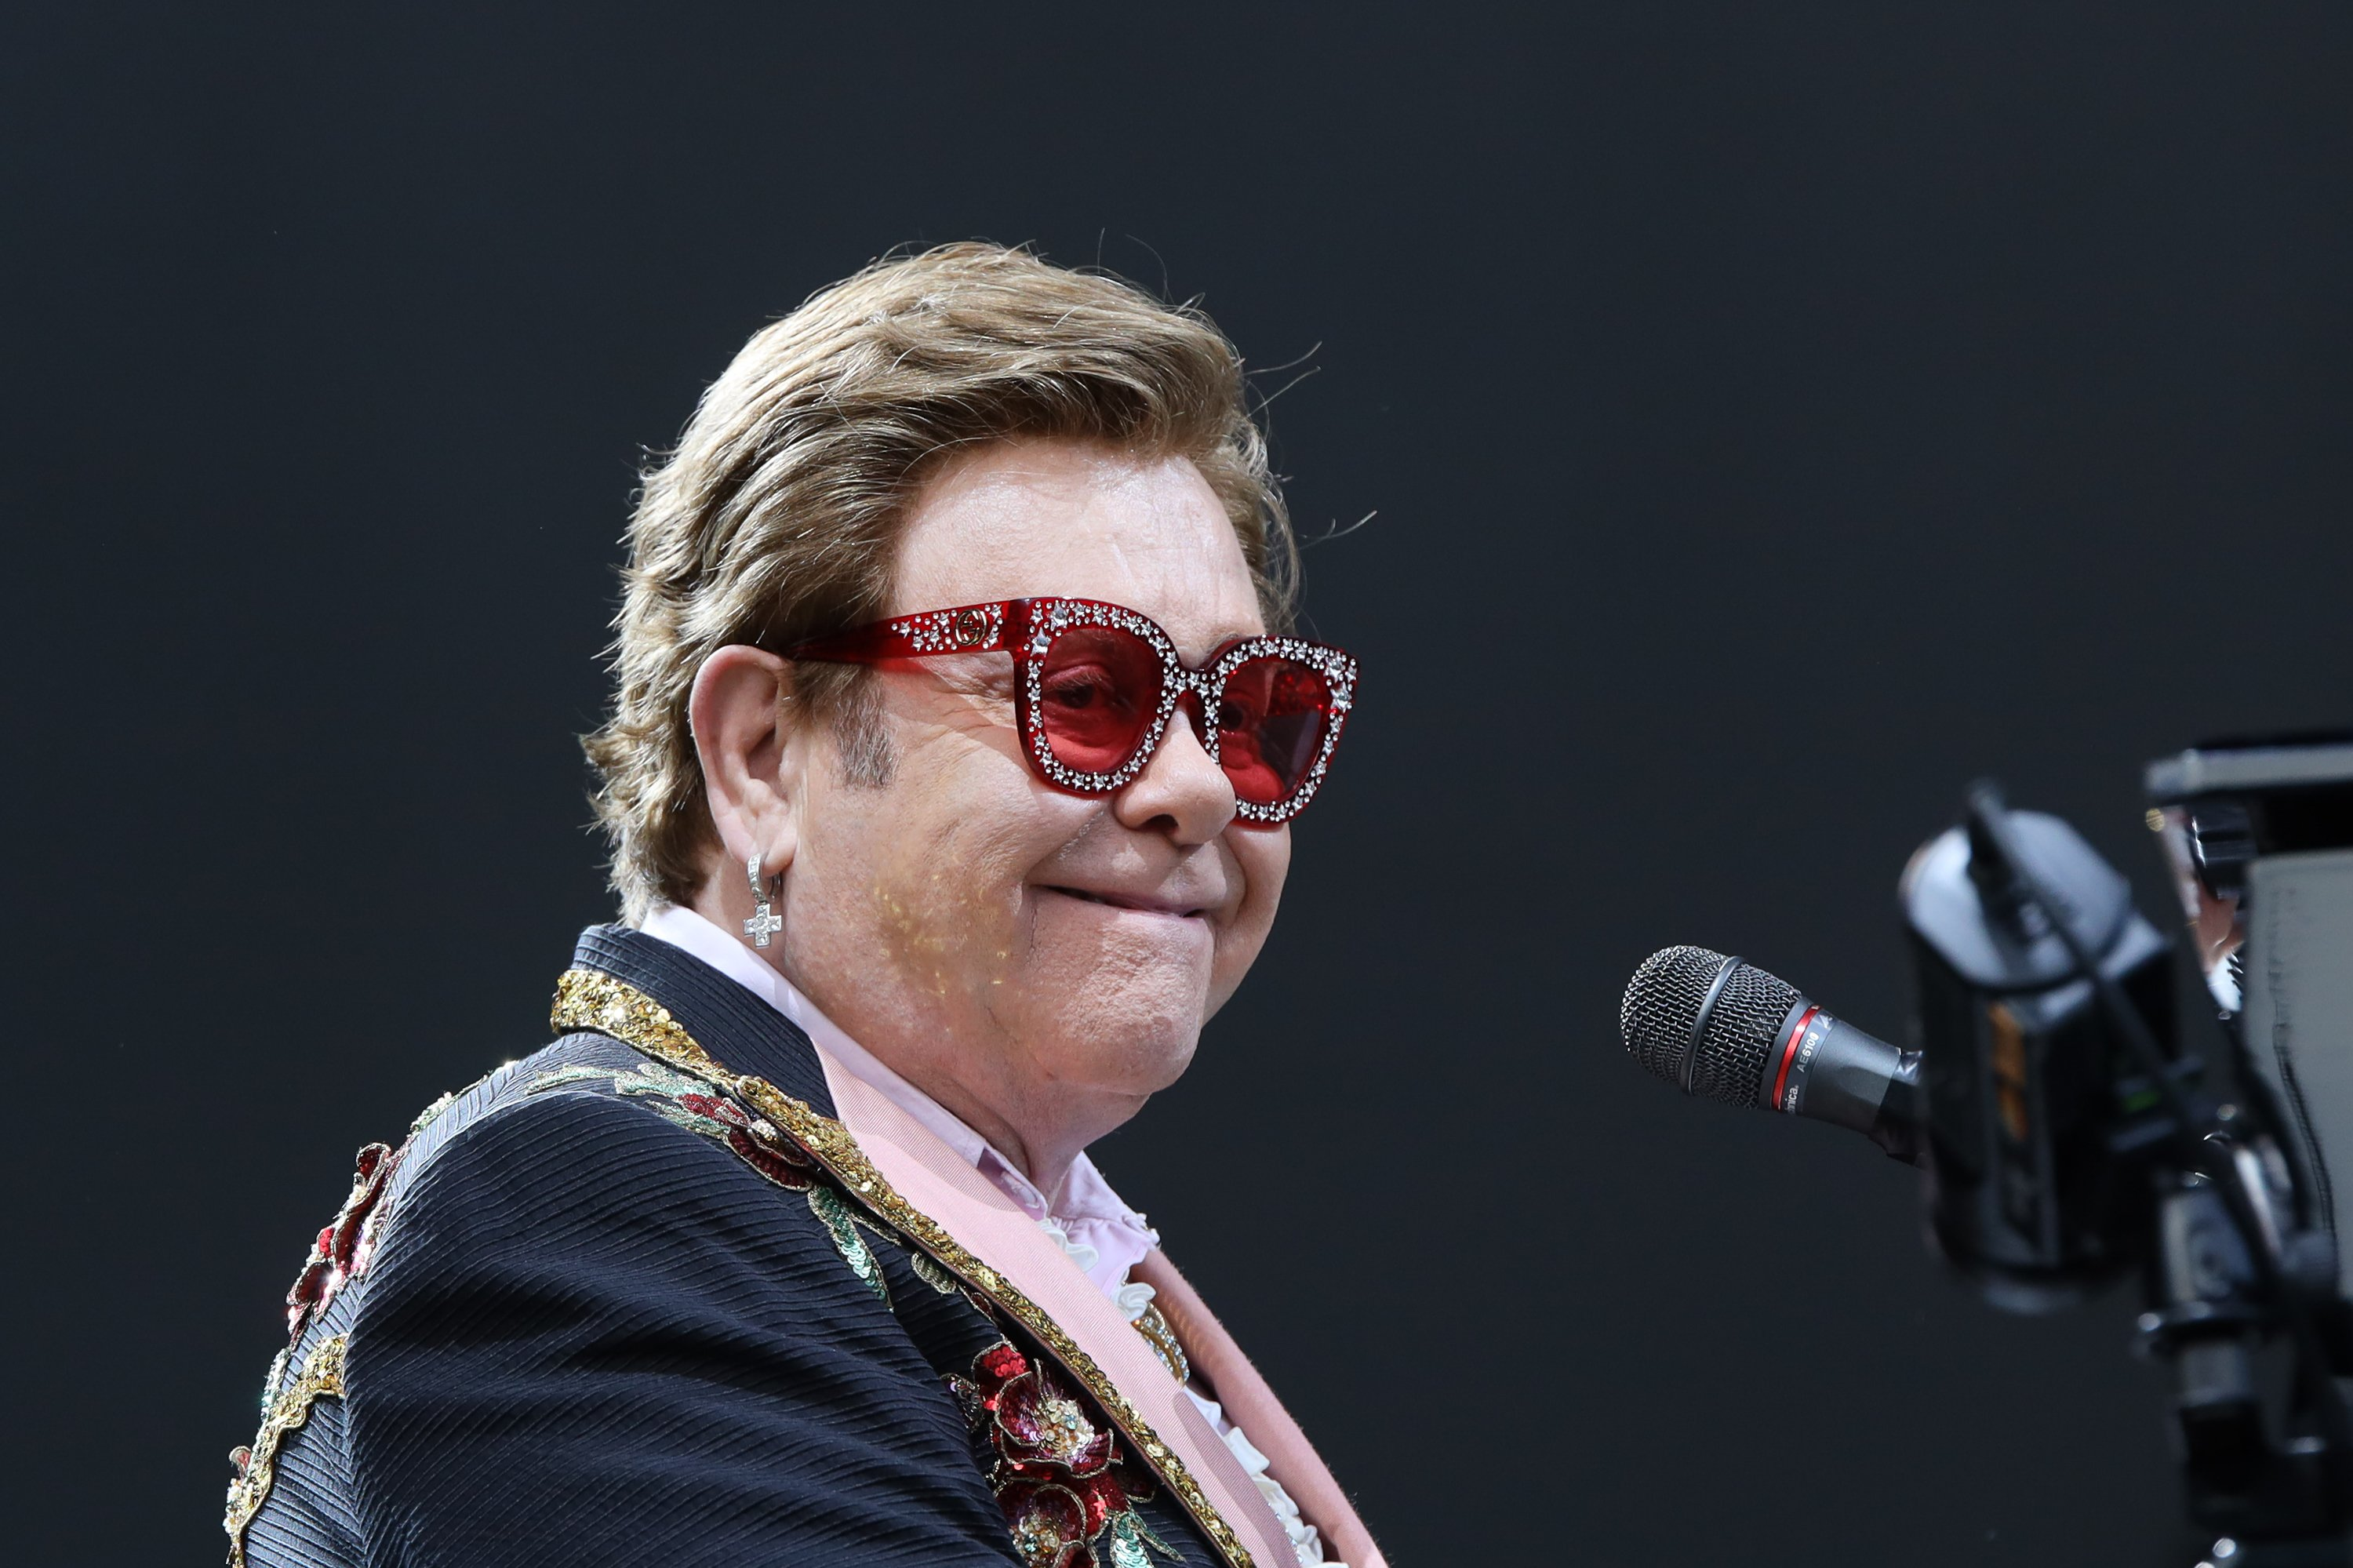 Sir Elton John performing at Mt Smart Stadium right before walking off stage on February 16, 2020 in Auckland, New Zealand   Photo: Dave Simpson/WireImage